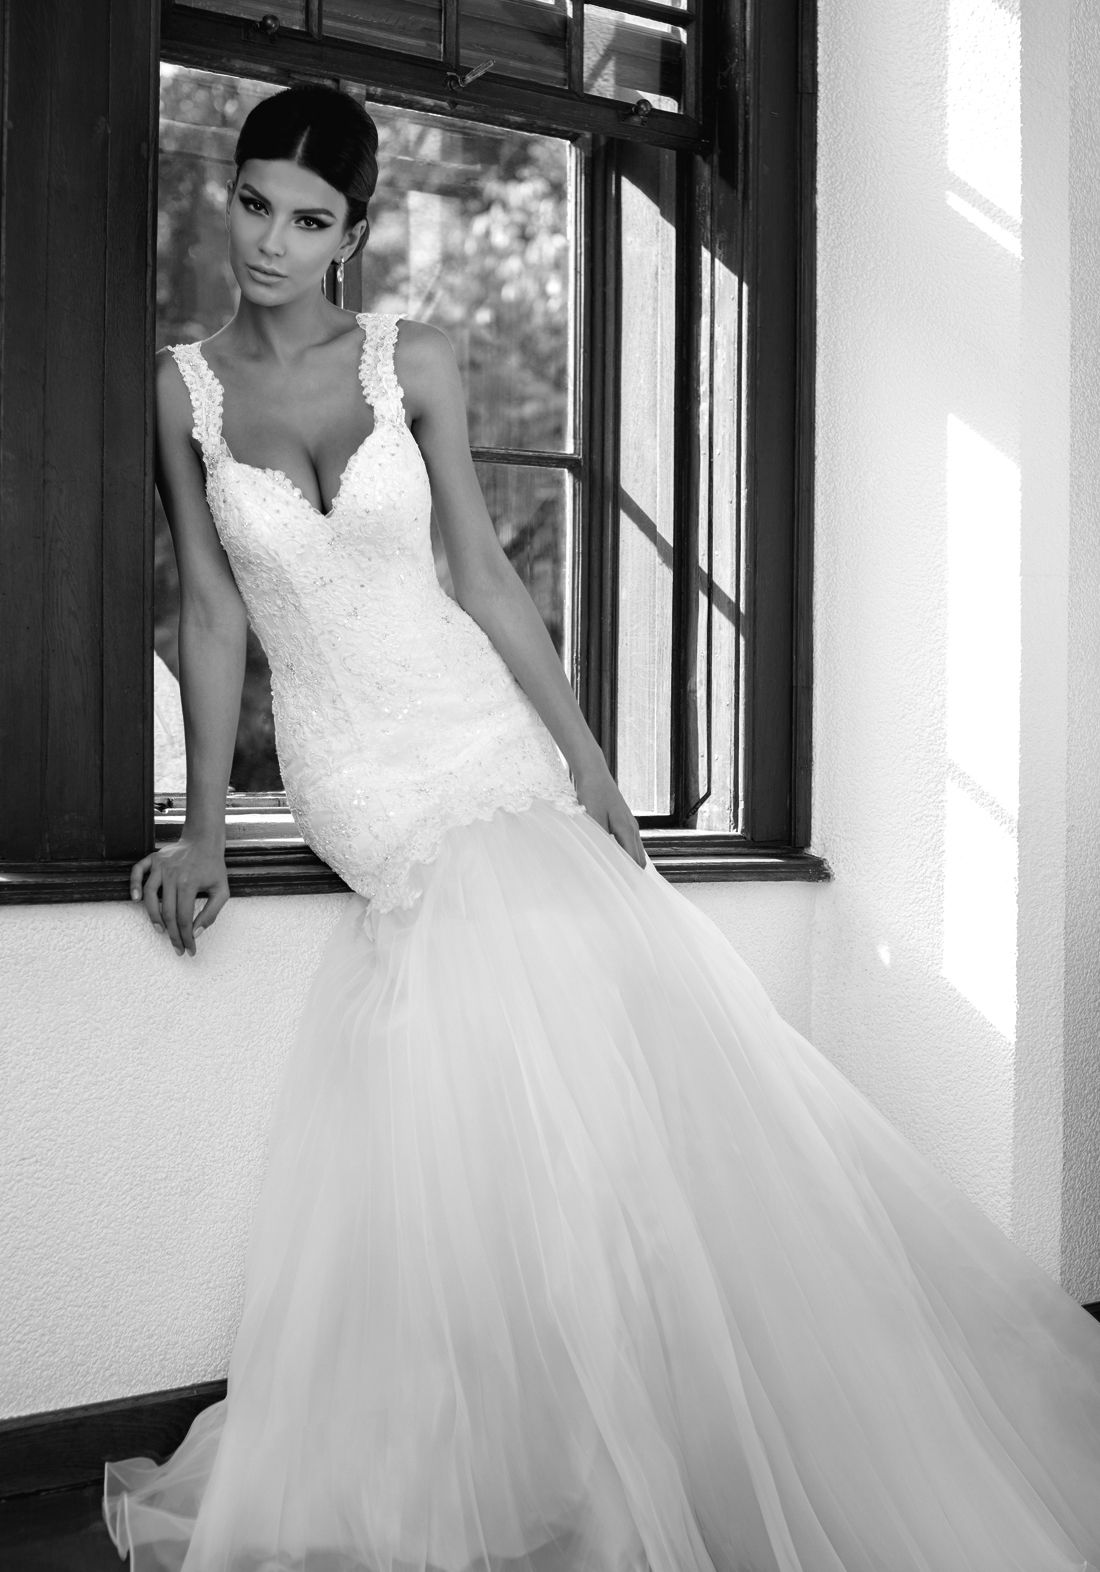 Edgy wedding dresses  GABRIELLE  Wedding Dresses  One Love  Collection  Bien Savvy